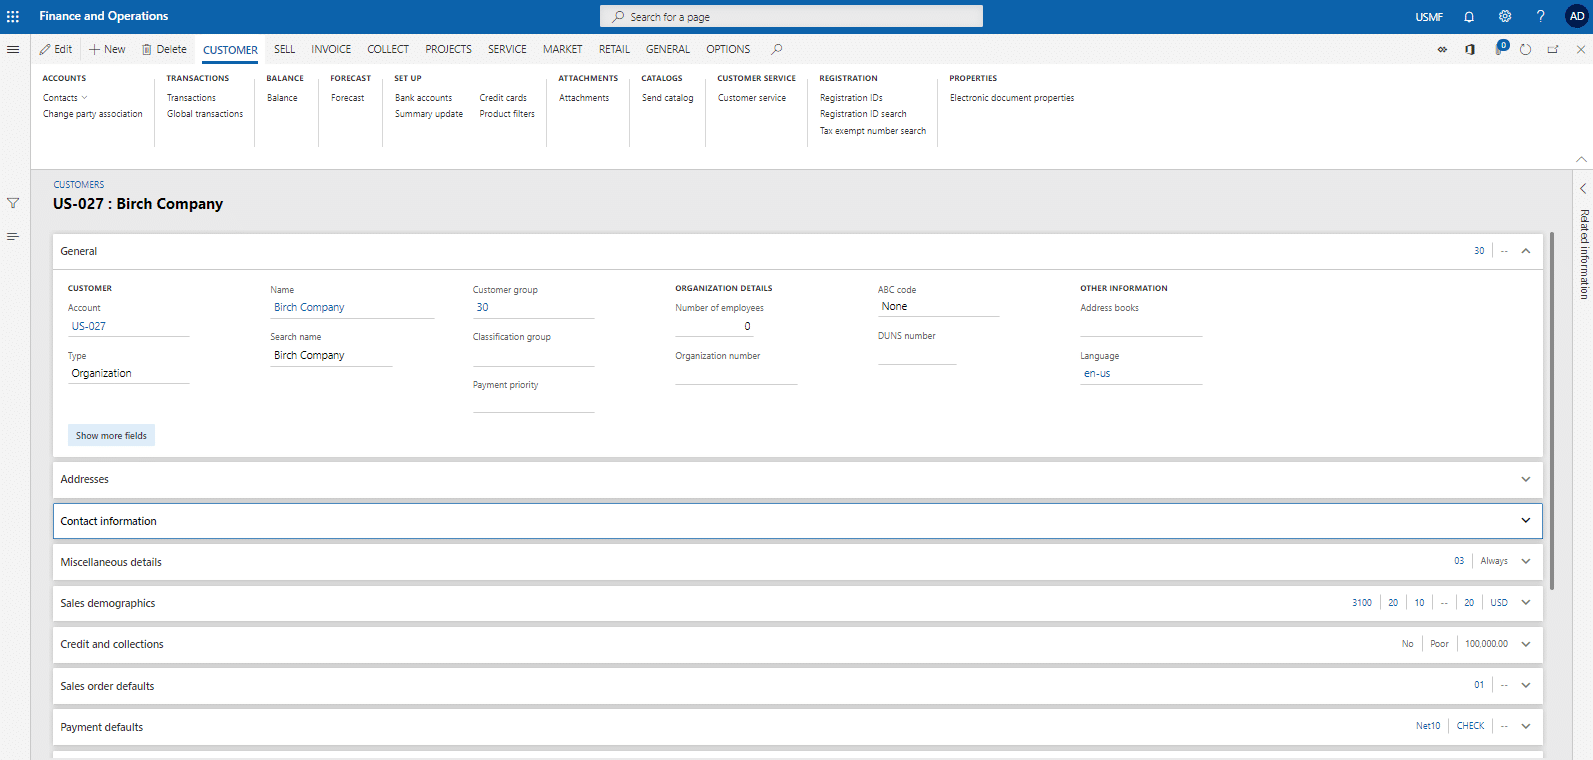 Dynamics 365 for Finance and Operations2